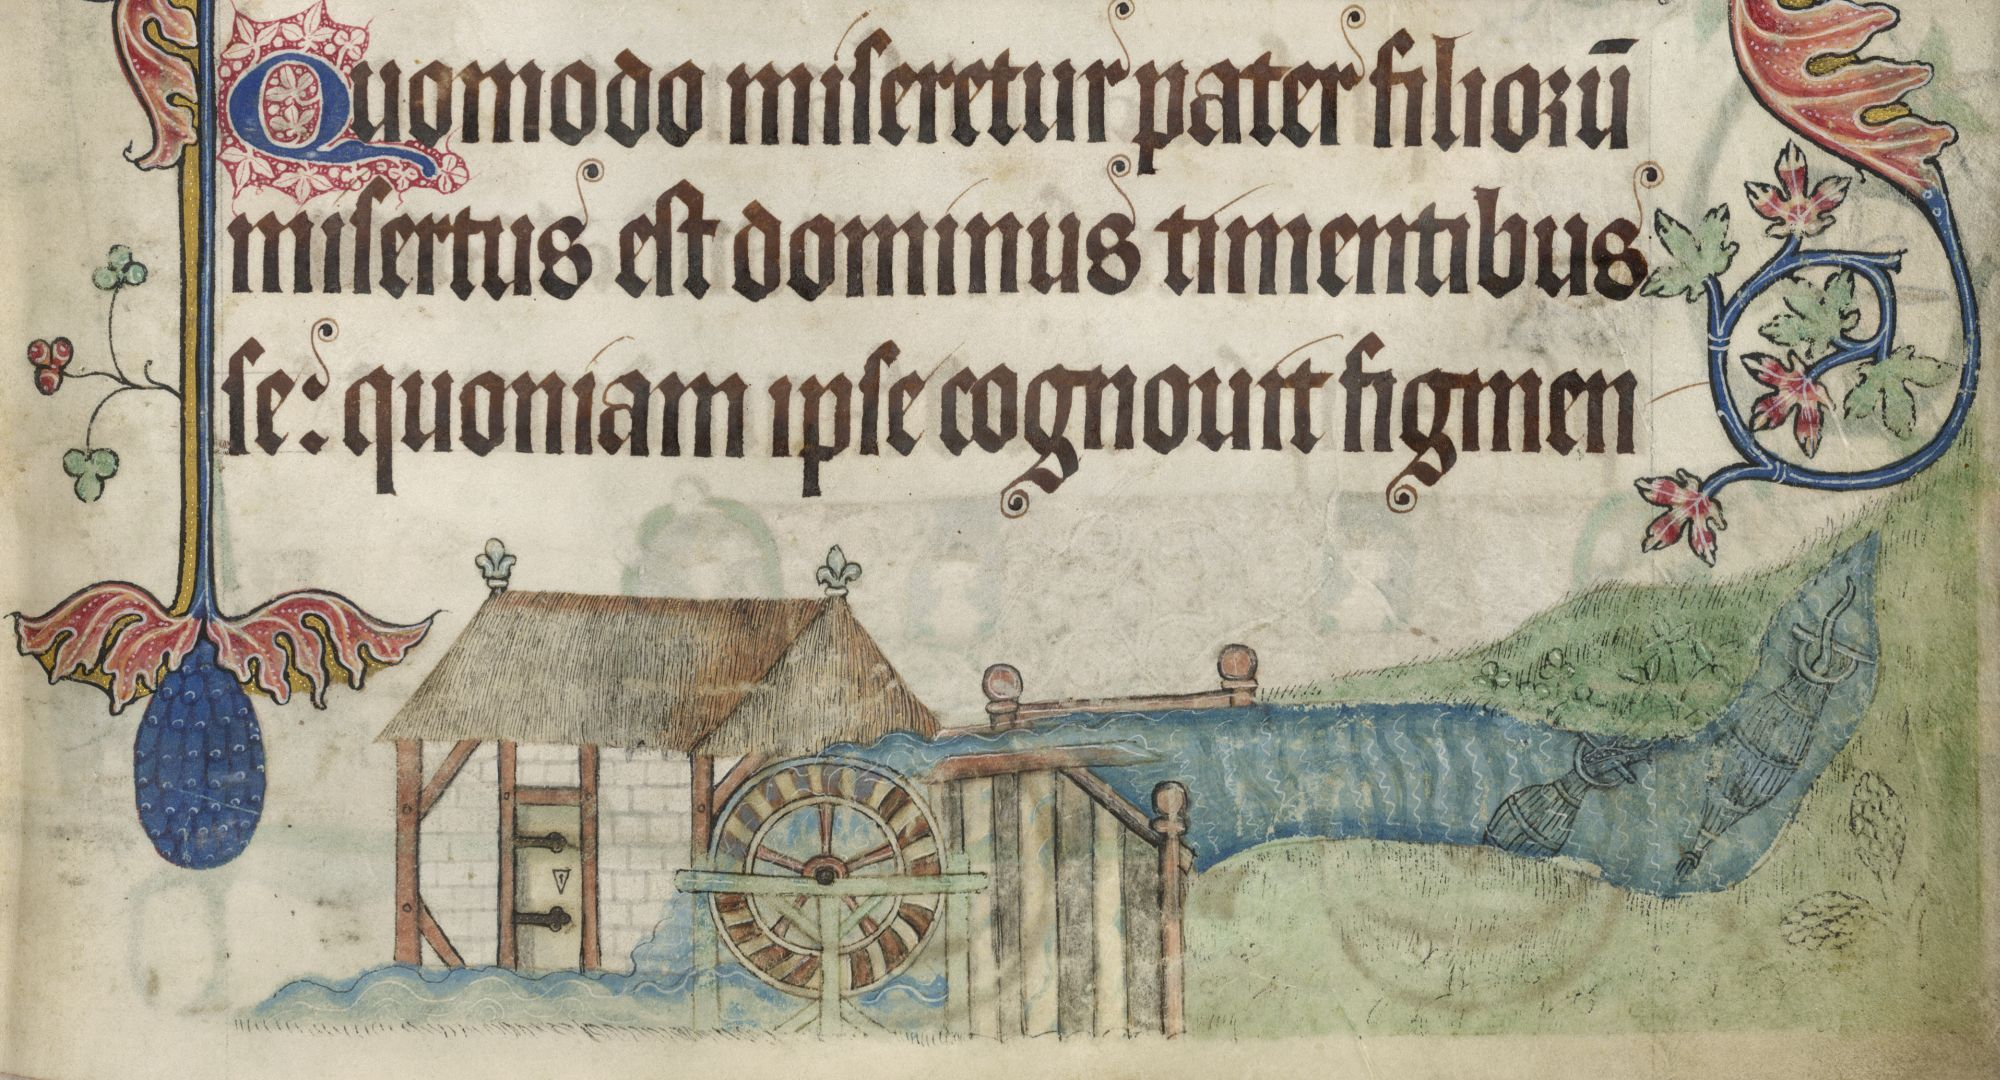 A view of Irnham Mill from the Luttrell Psalter.